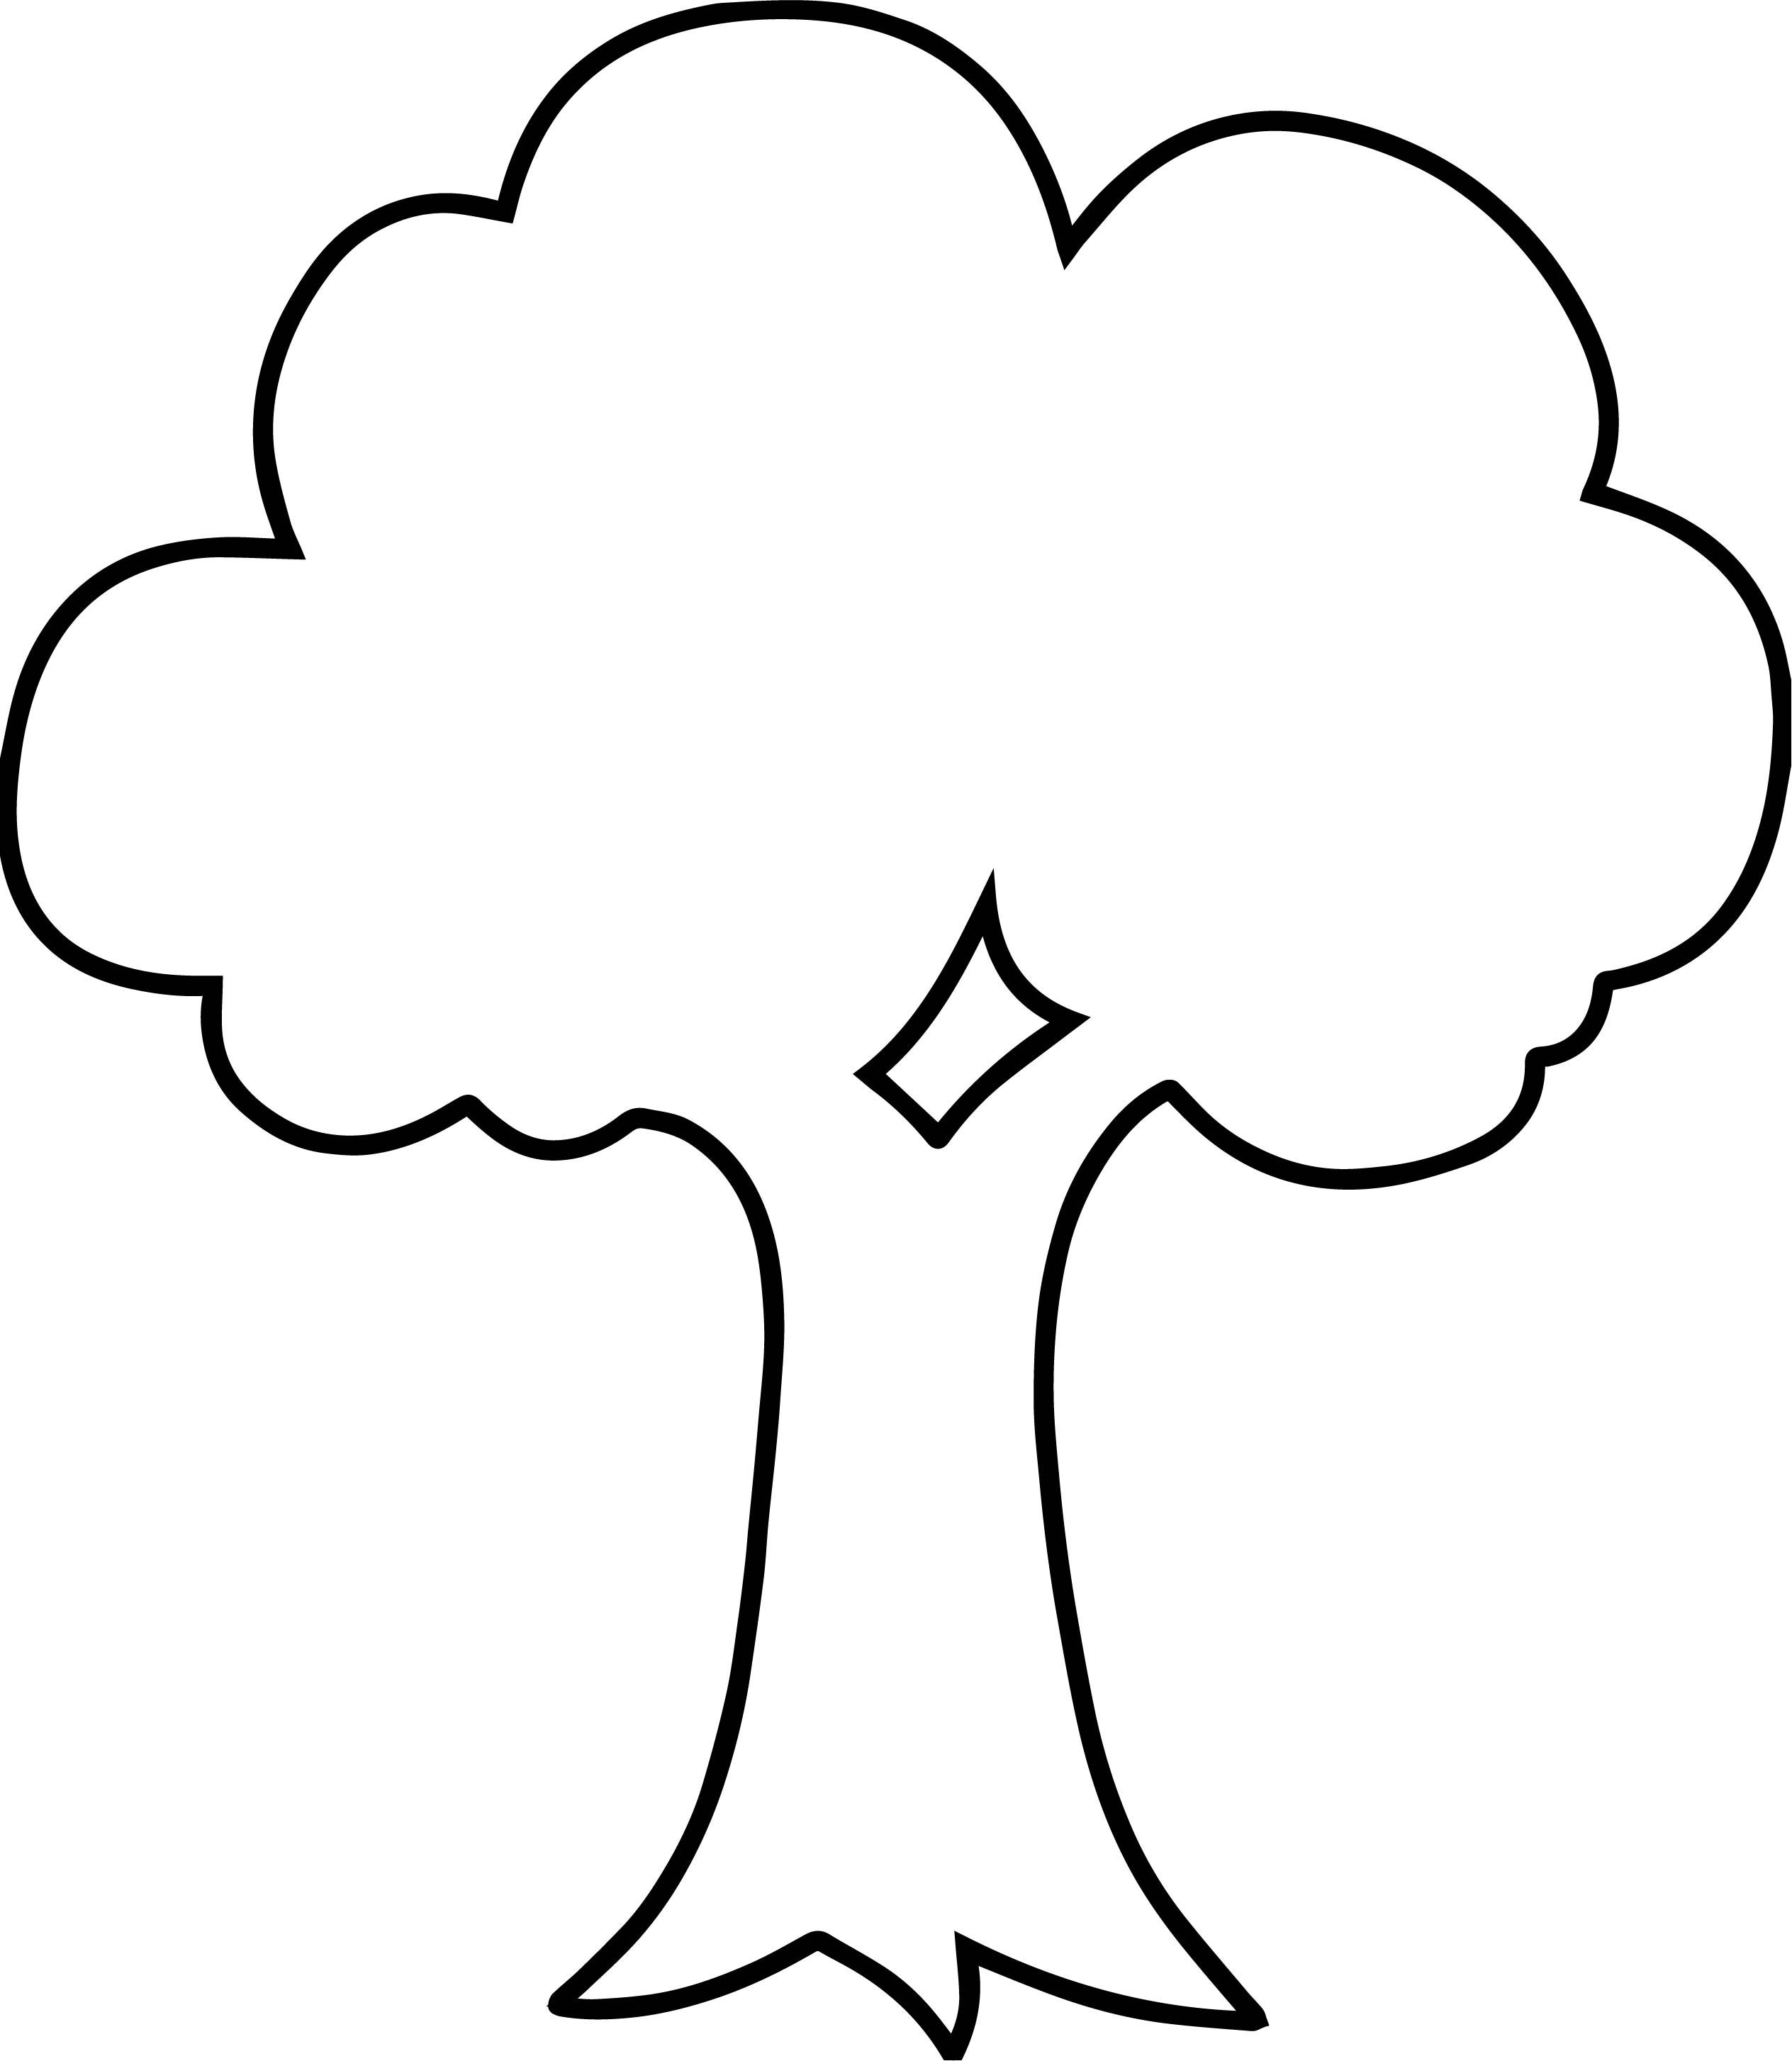 apple tree pictures to color apple tree templatedgn apple tree without leaves color tree to pictures apple